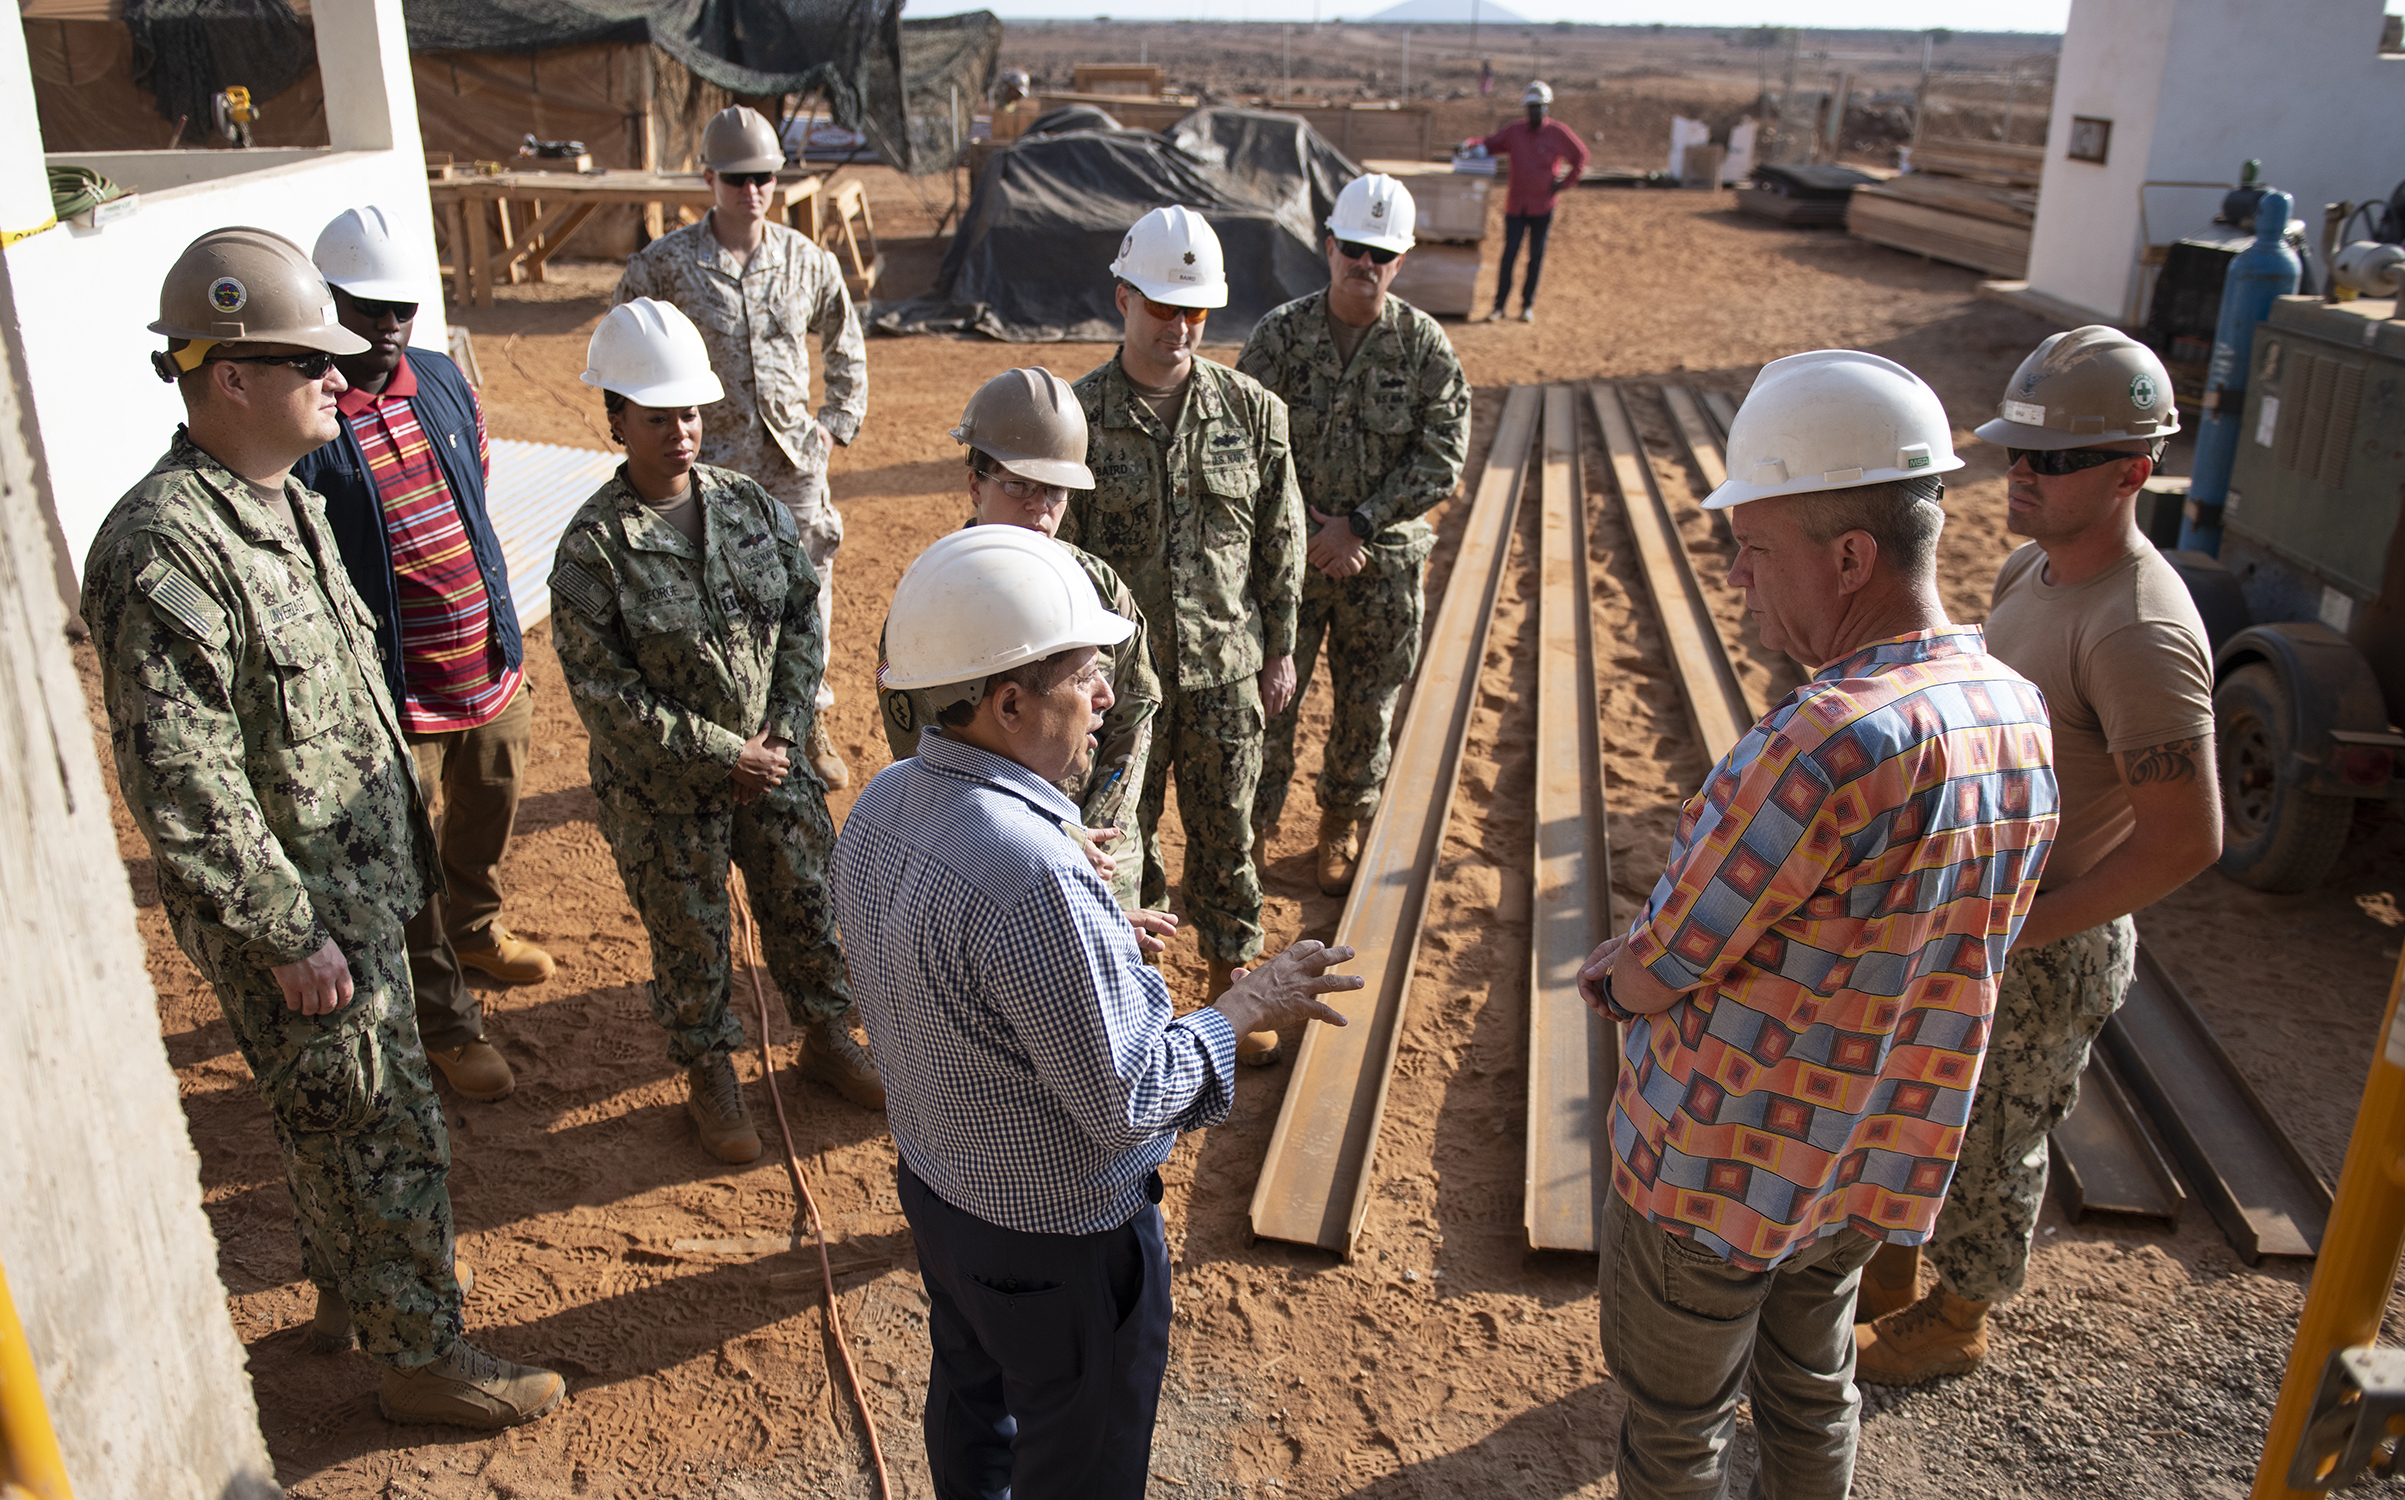 Amb. Larry André Jr., right, U.S. Ambassador to the Republic of Djibouti, speaks to an embassy official and U.S. Navy Seabees from Naval Mobile Construction Battalions 1 and 18, assigned to Combined Joint Task Force-Horn of Africa, Camp Lemonnier, Djibouti, during a visit to the construction site of the future Ali Oune, Djibouti, Women's Medical Clinic, Dec. 3, 2018. Slated for completion by January 2019, the clinic is intended to enhance the Ministry of Health for Djibouti's ability to provide basic medical, birth and after care to the Ali Oune village and its more than 1,000 residents and rural neighbors. (U.S. Air Force photo by Tech. Sgt. Shawn Nickel)